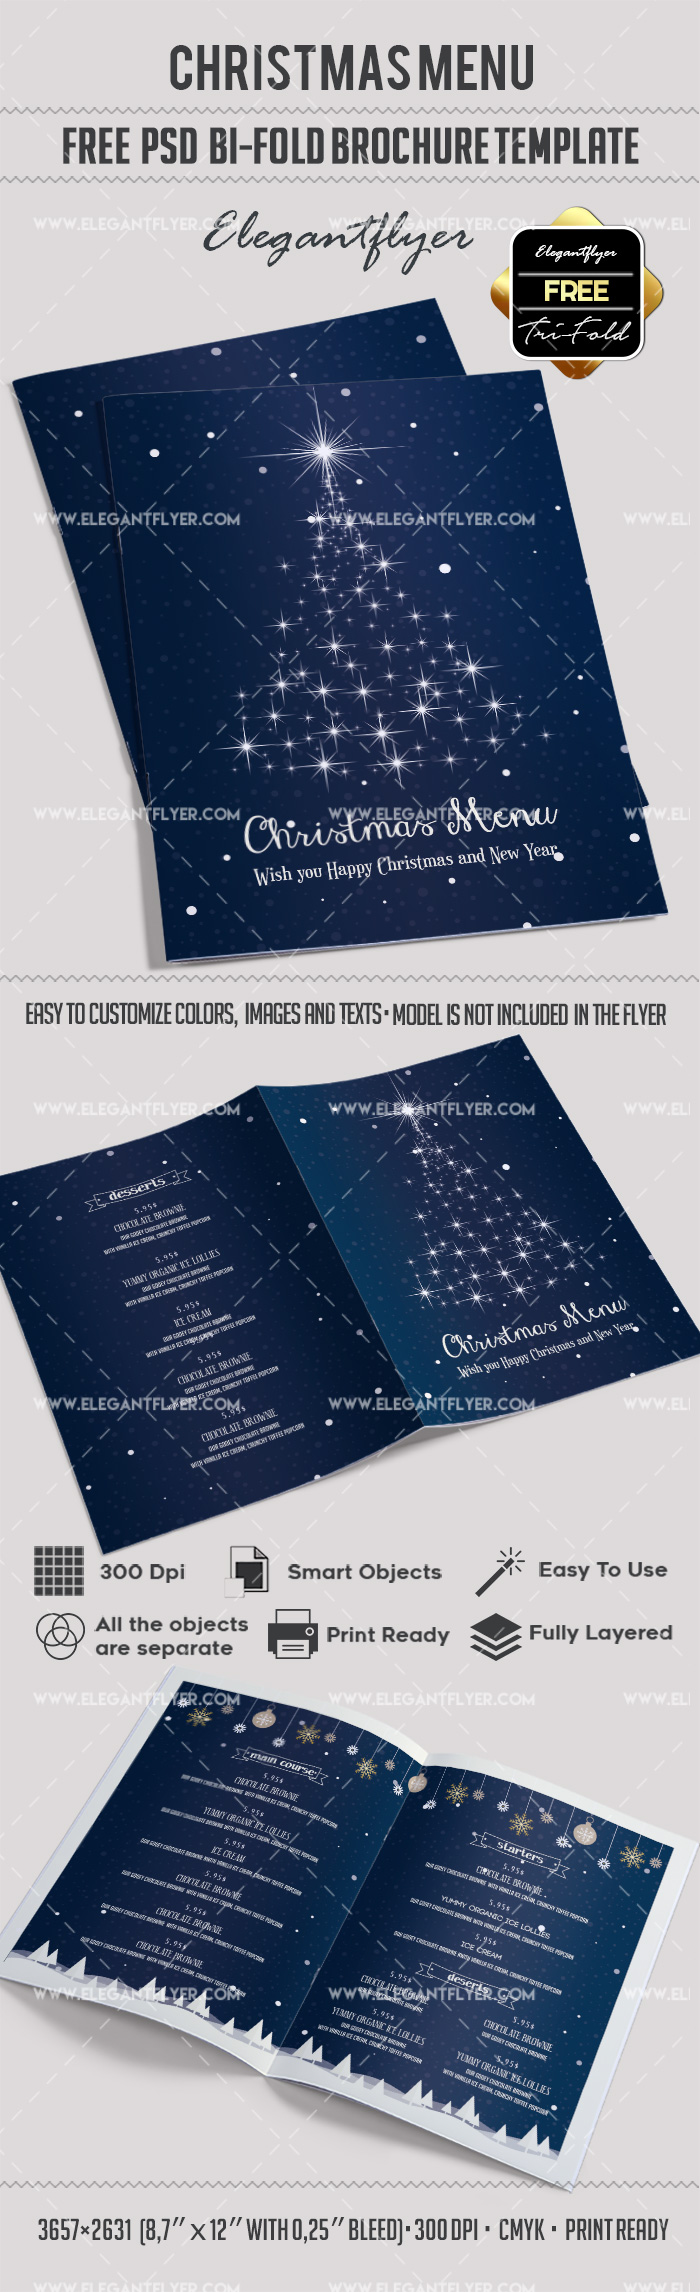 menu brochure template free - free christmas menu bi fold psd brochure template by